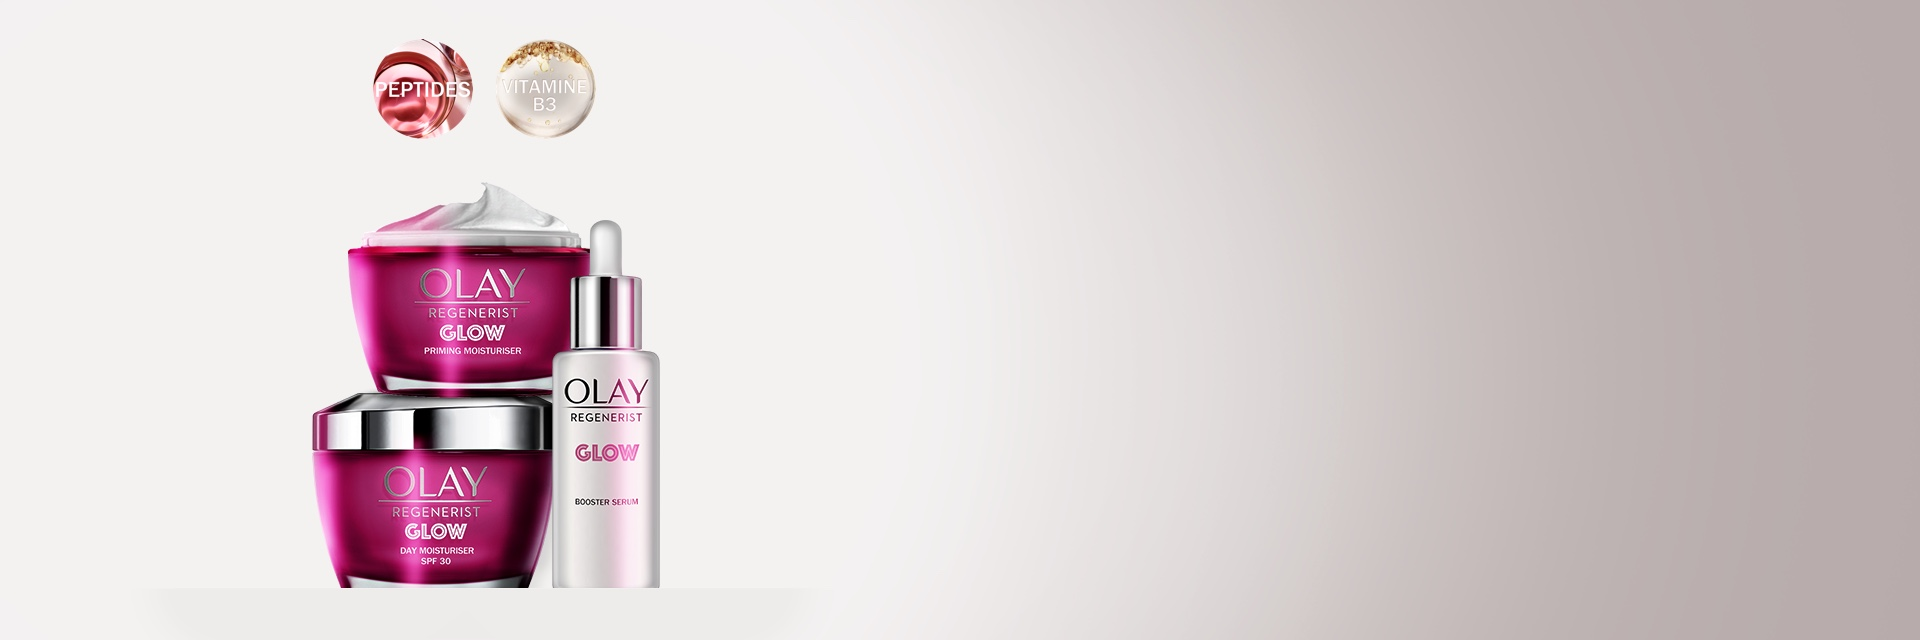 Olay Collections page - Glow banner